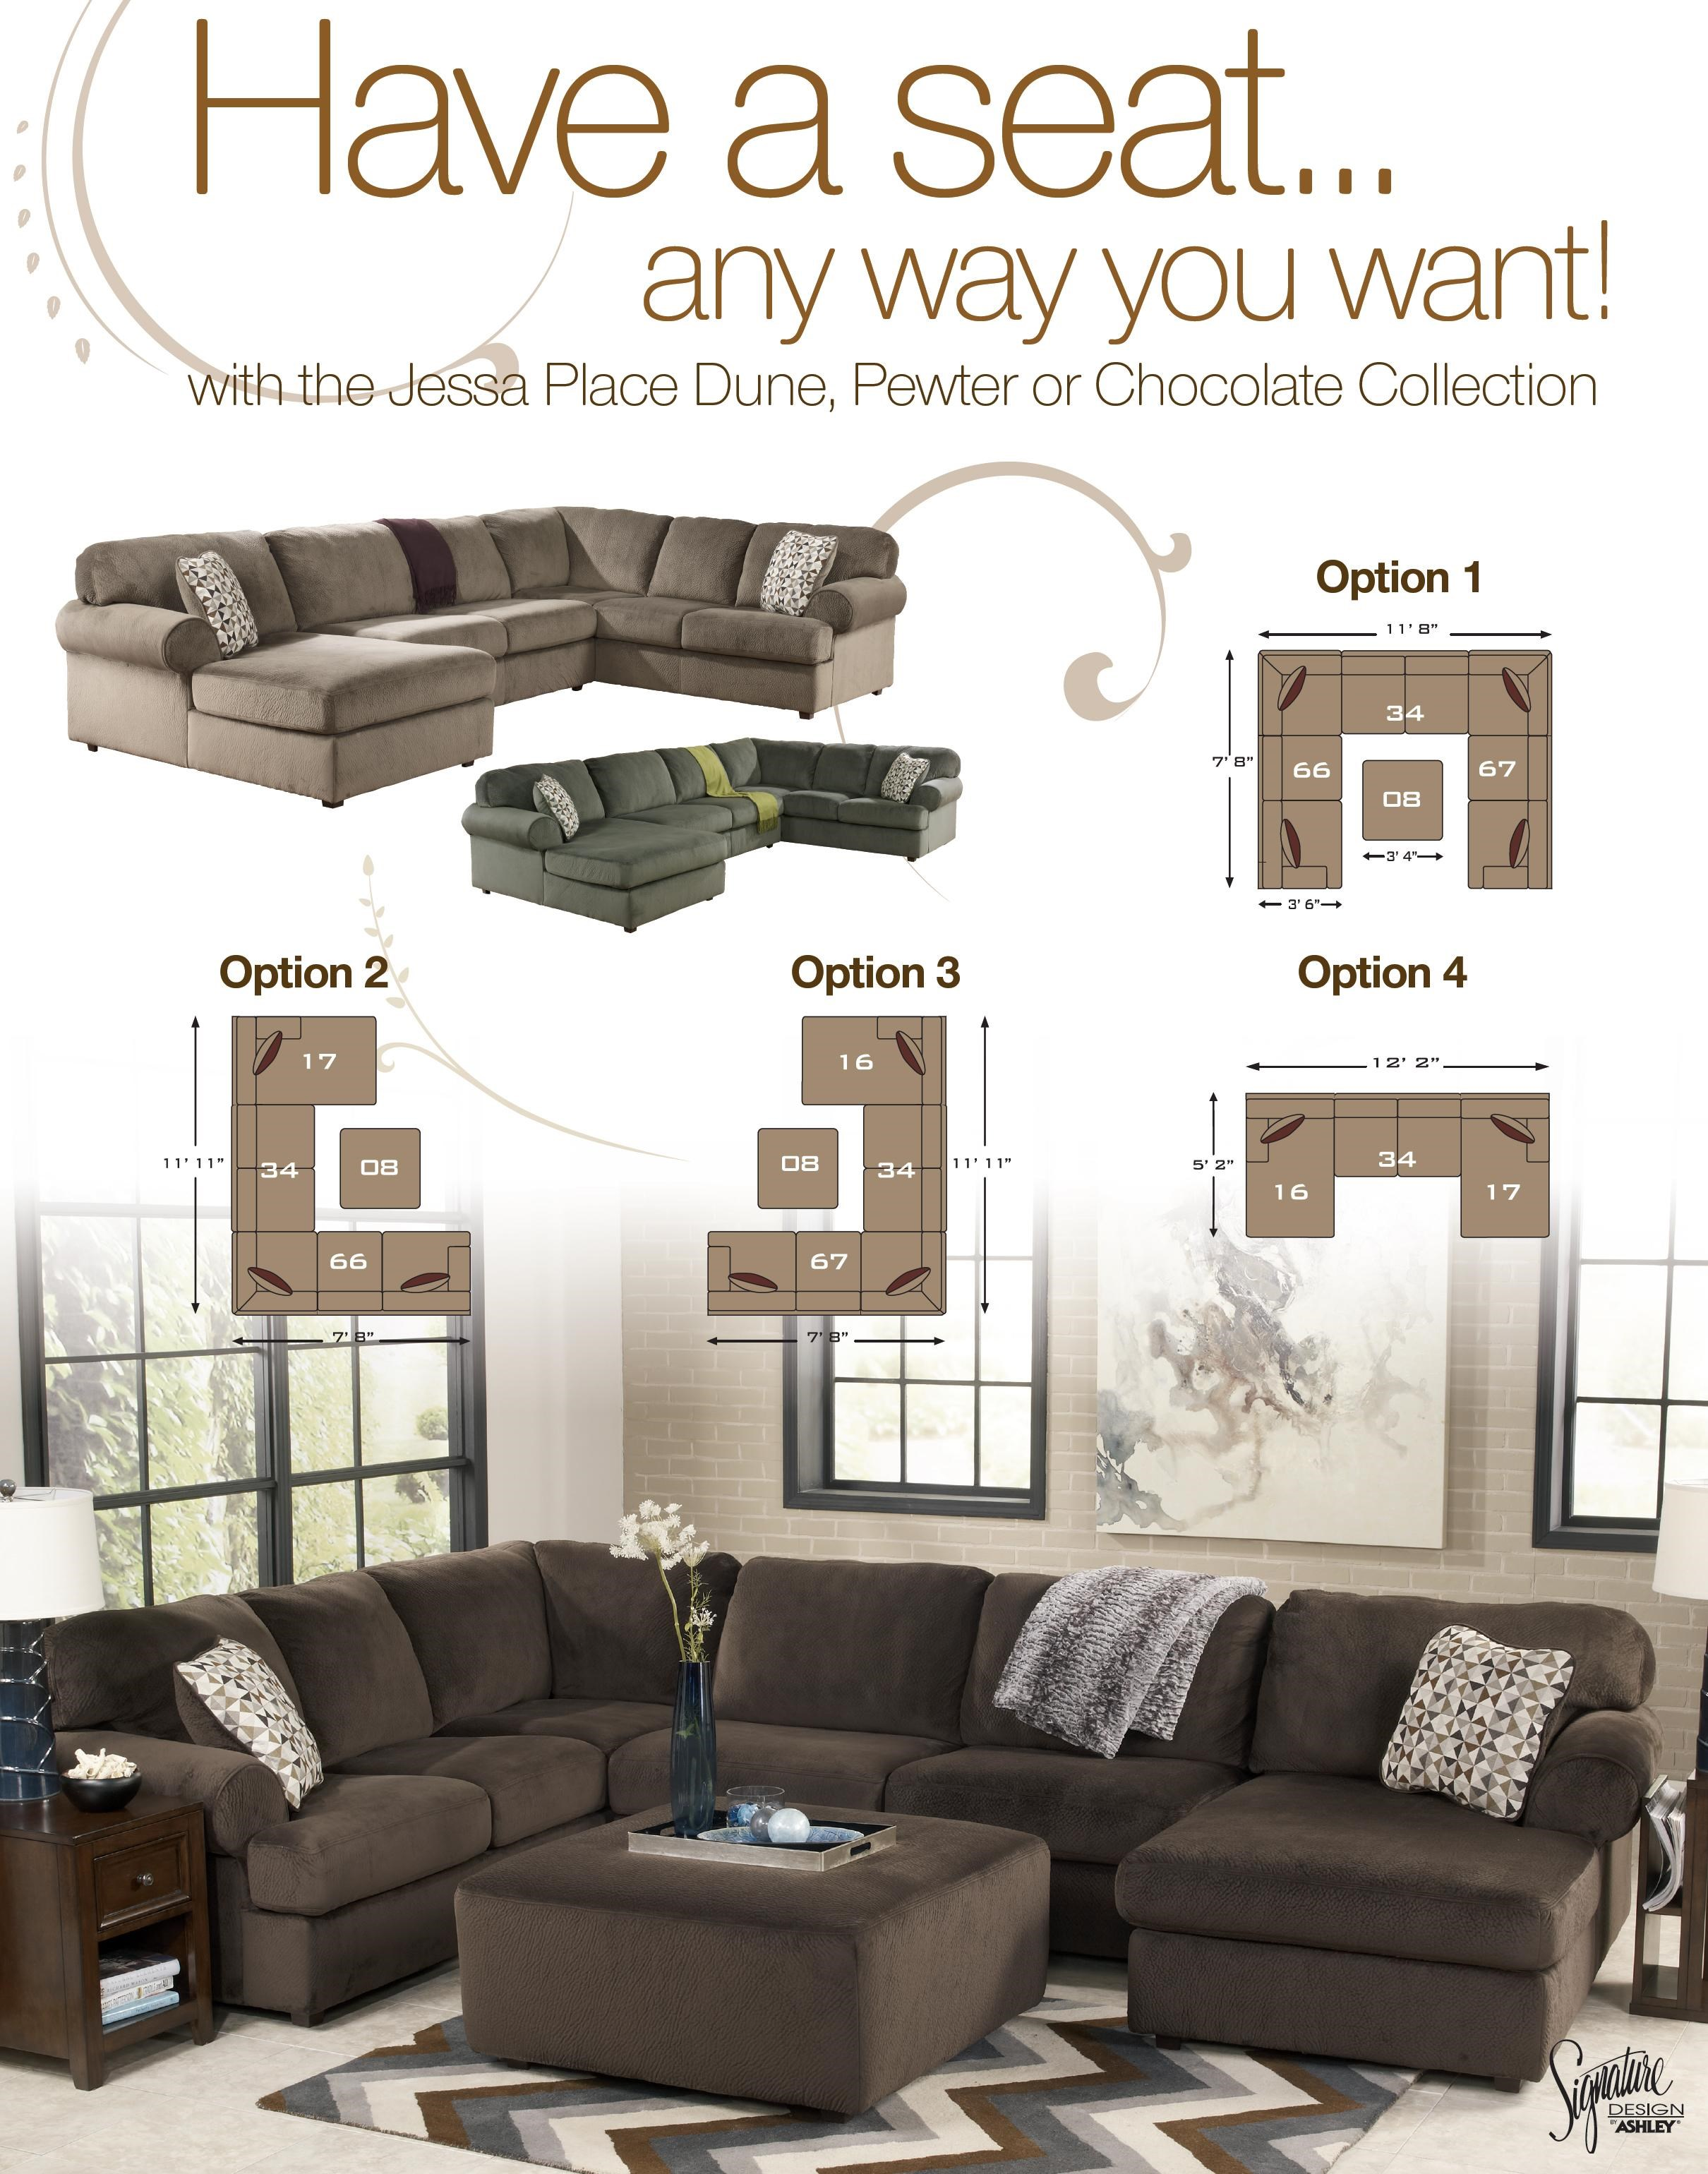 Signature Design by Ashley Jessa Place - Dune LAF Sofa  sc 1 st  Furniture Fair : jessa sectional - Sectionals, Sofas & Couches